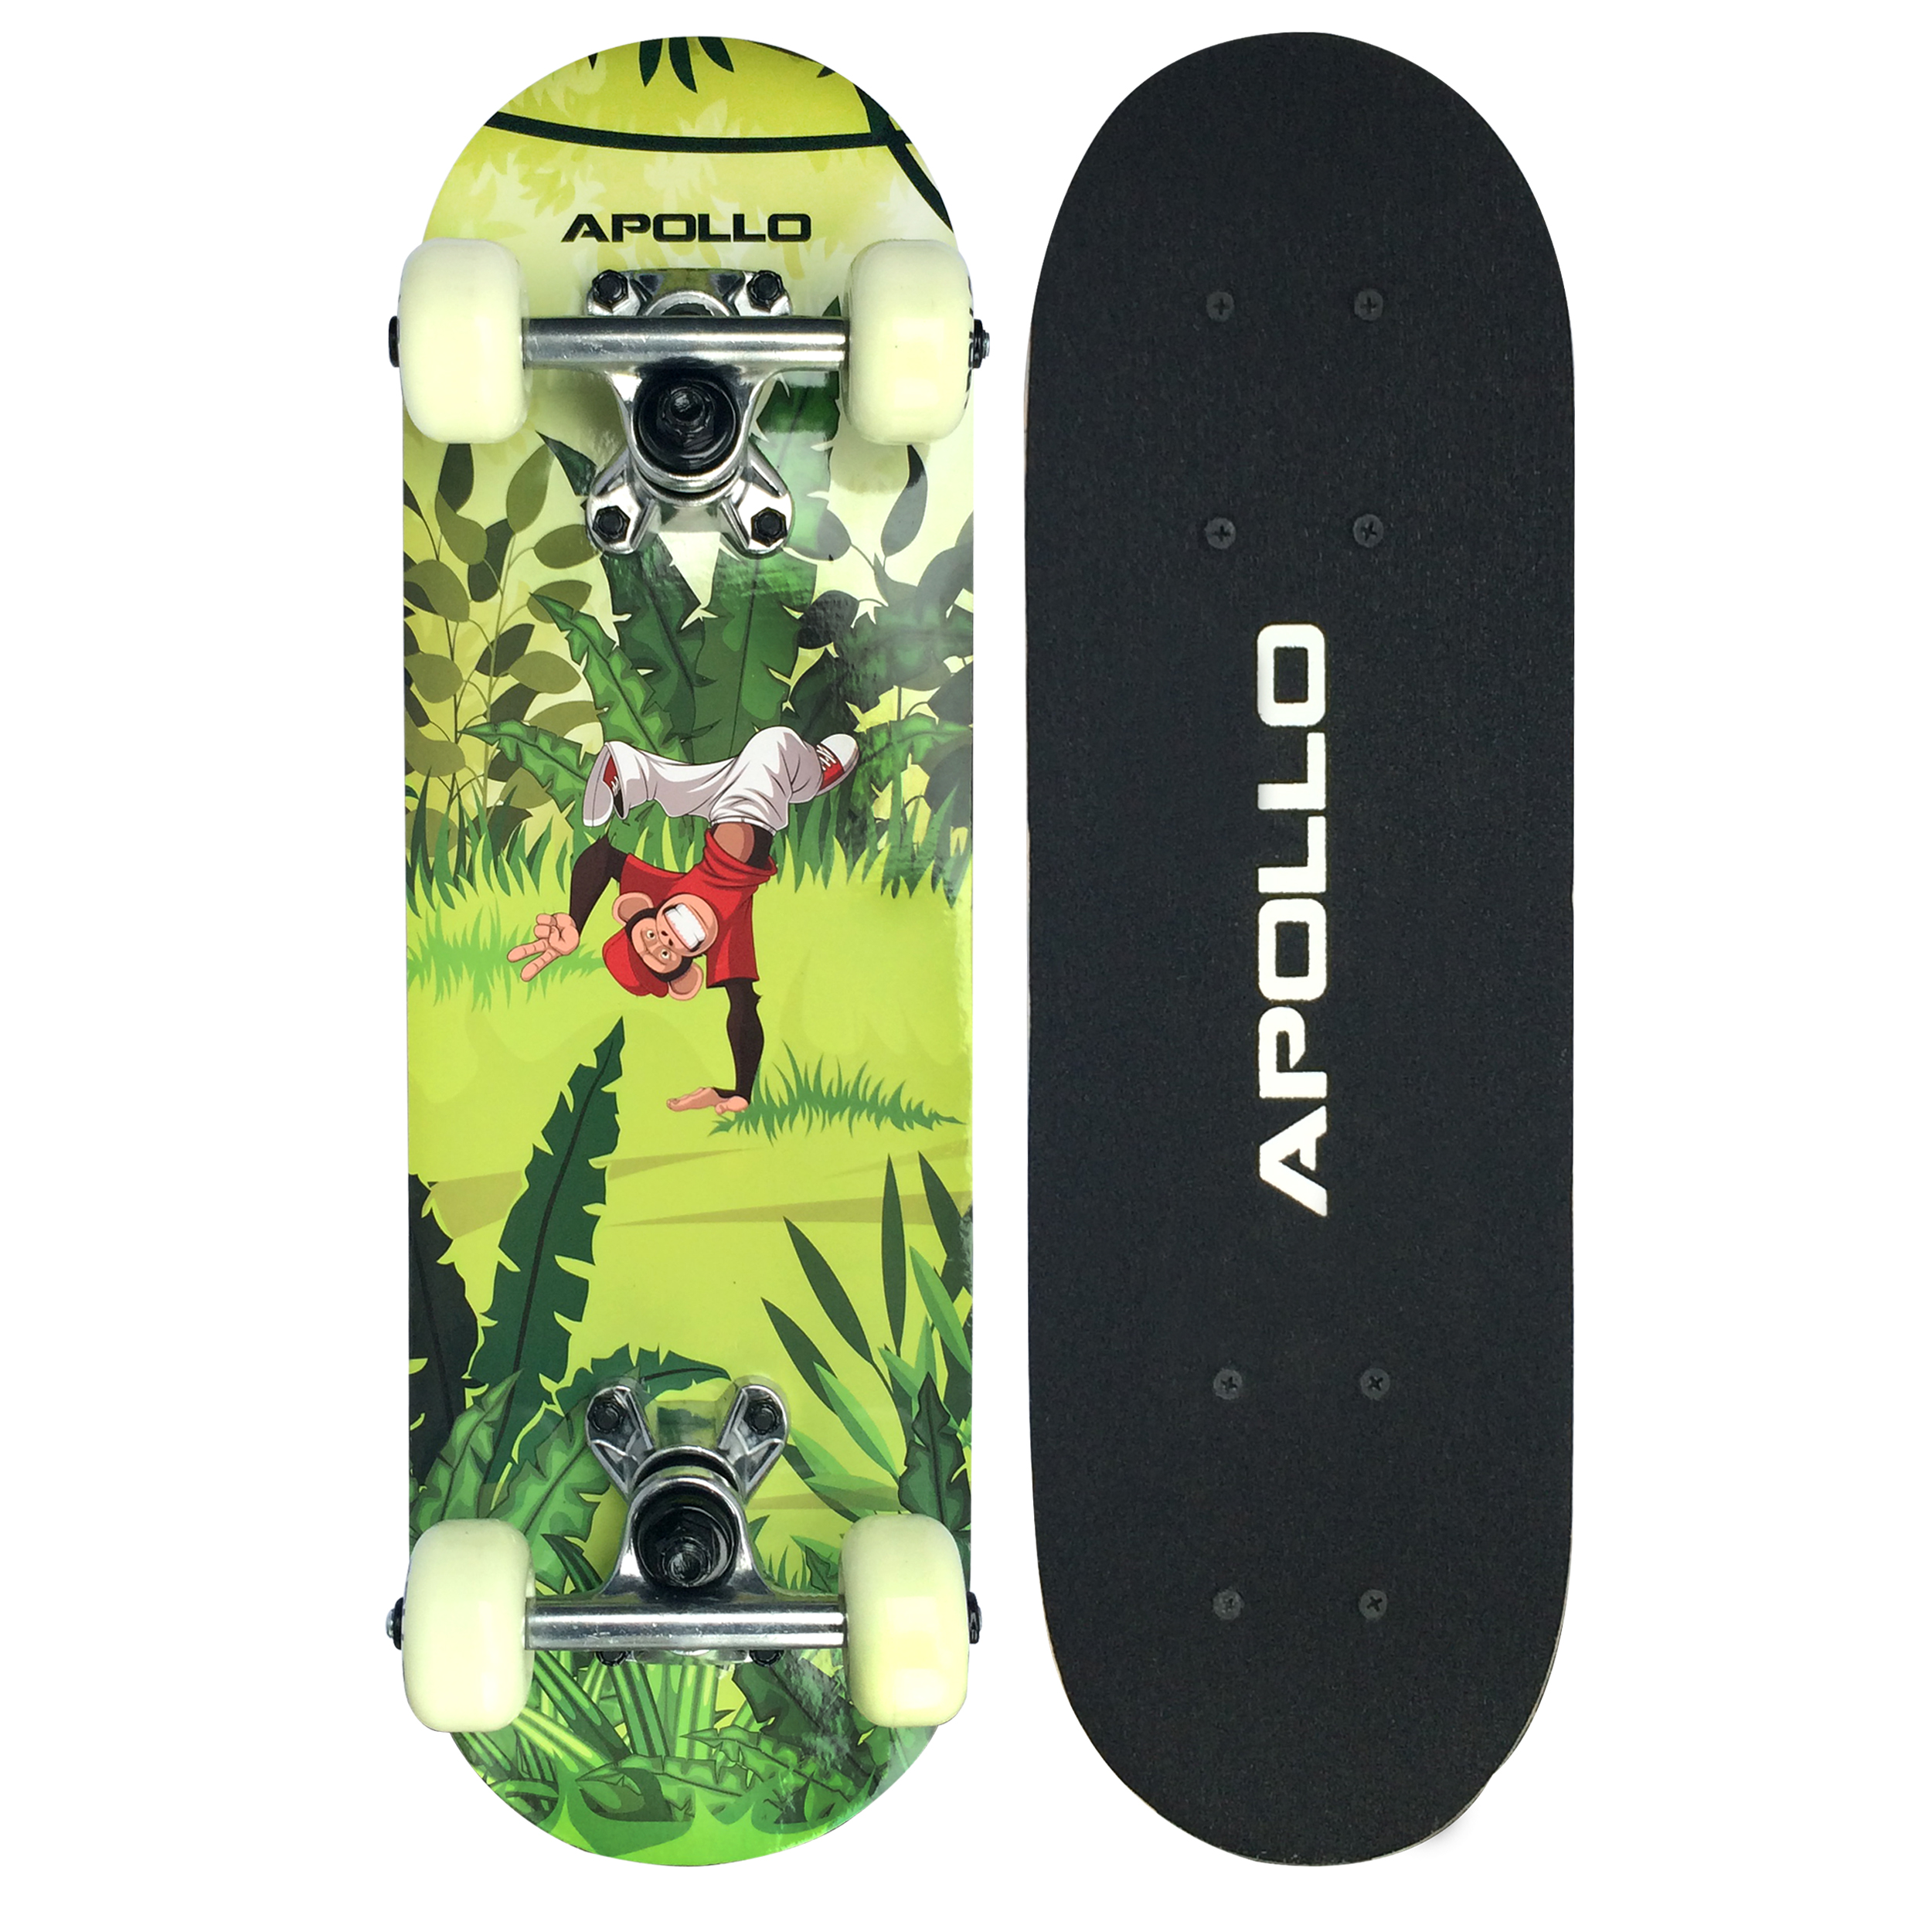 Apollo Skateboard Monkey Man - Kinderskateboard 51cm